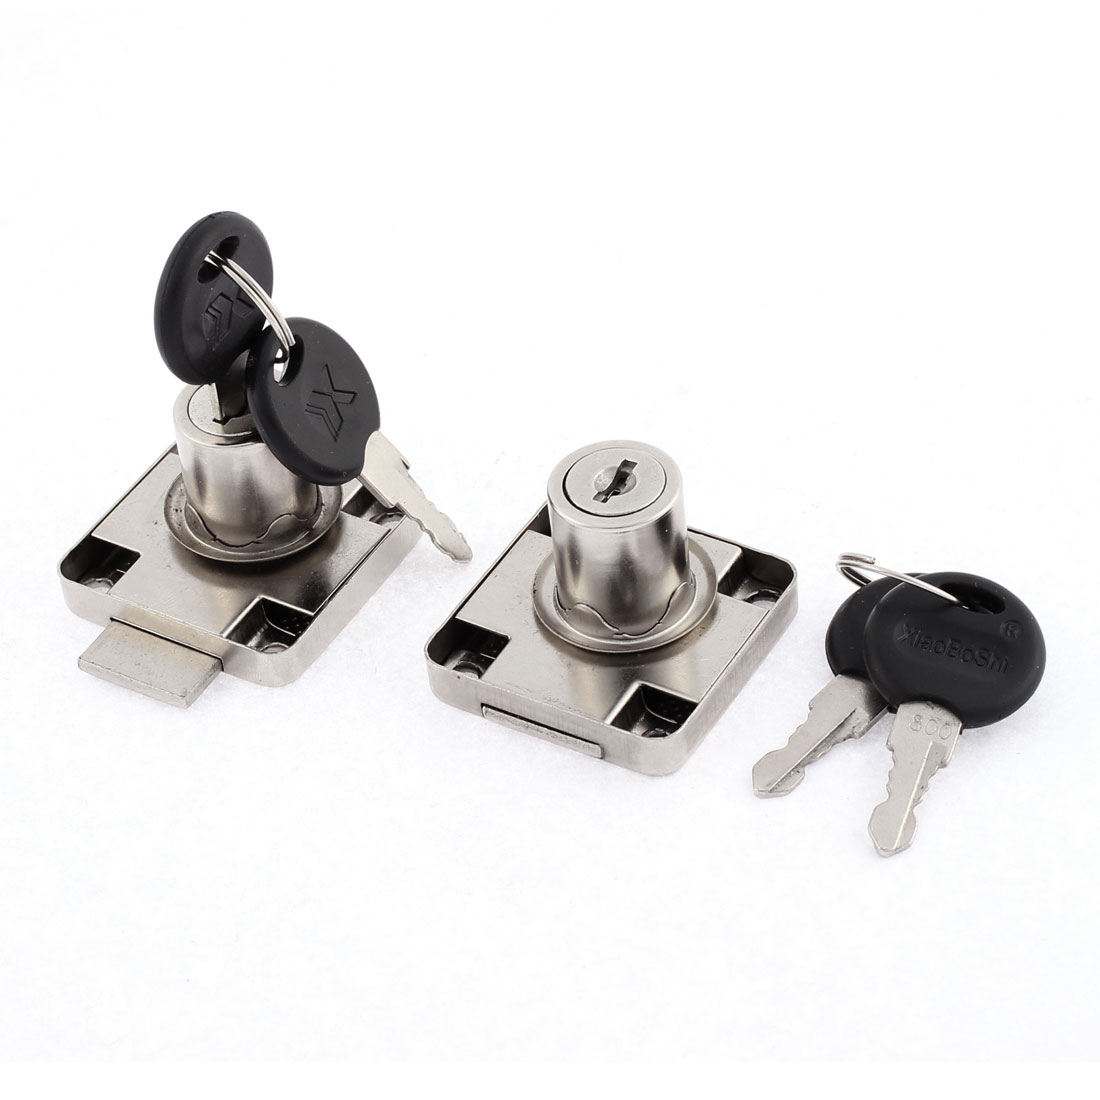 2 Pcs 4cm x 4cm Cabinet Drawer Single Door Cylinder Tubular Head Security Lock w Keys